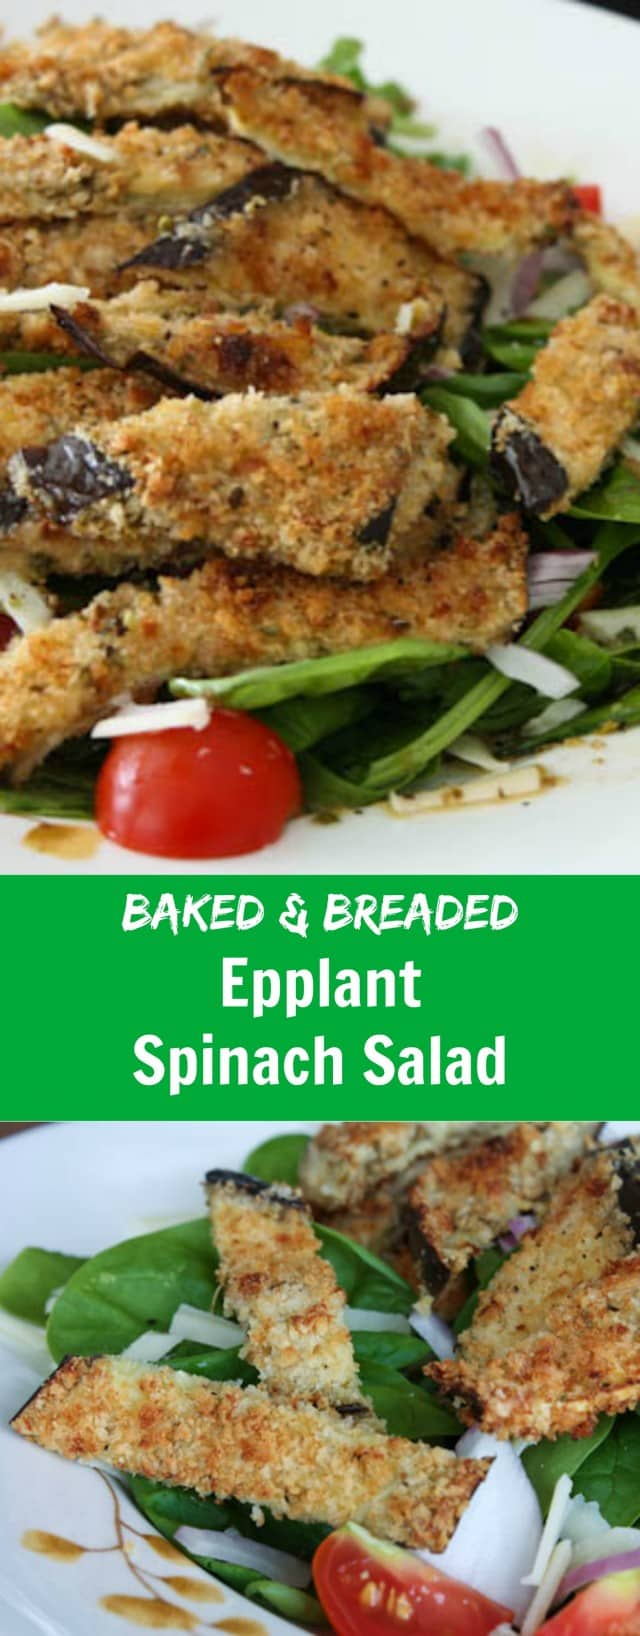 Baked and Breaded Eggplant topped Spinach Salad with mozzarella and tomatoes - this is the Italian Salad of my dreams!